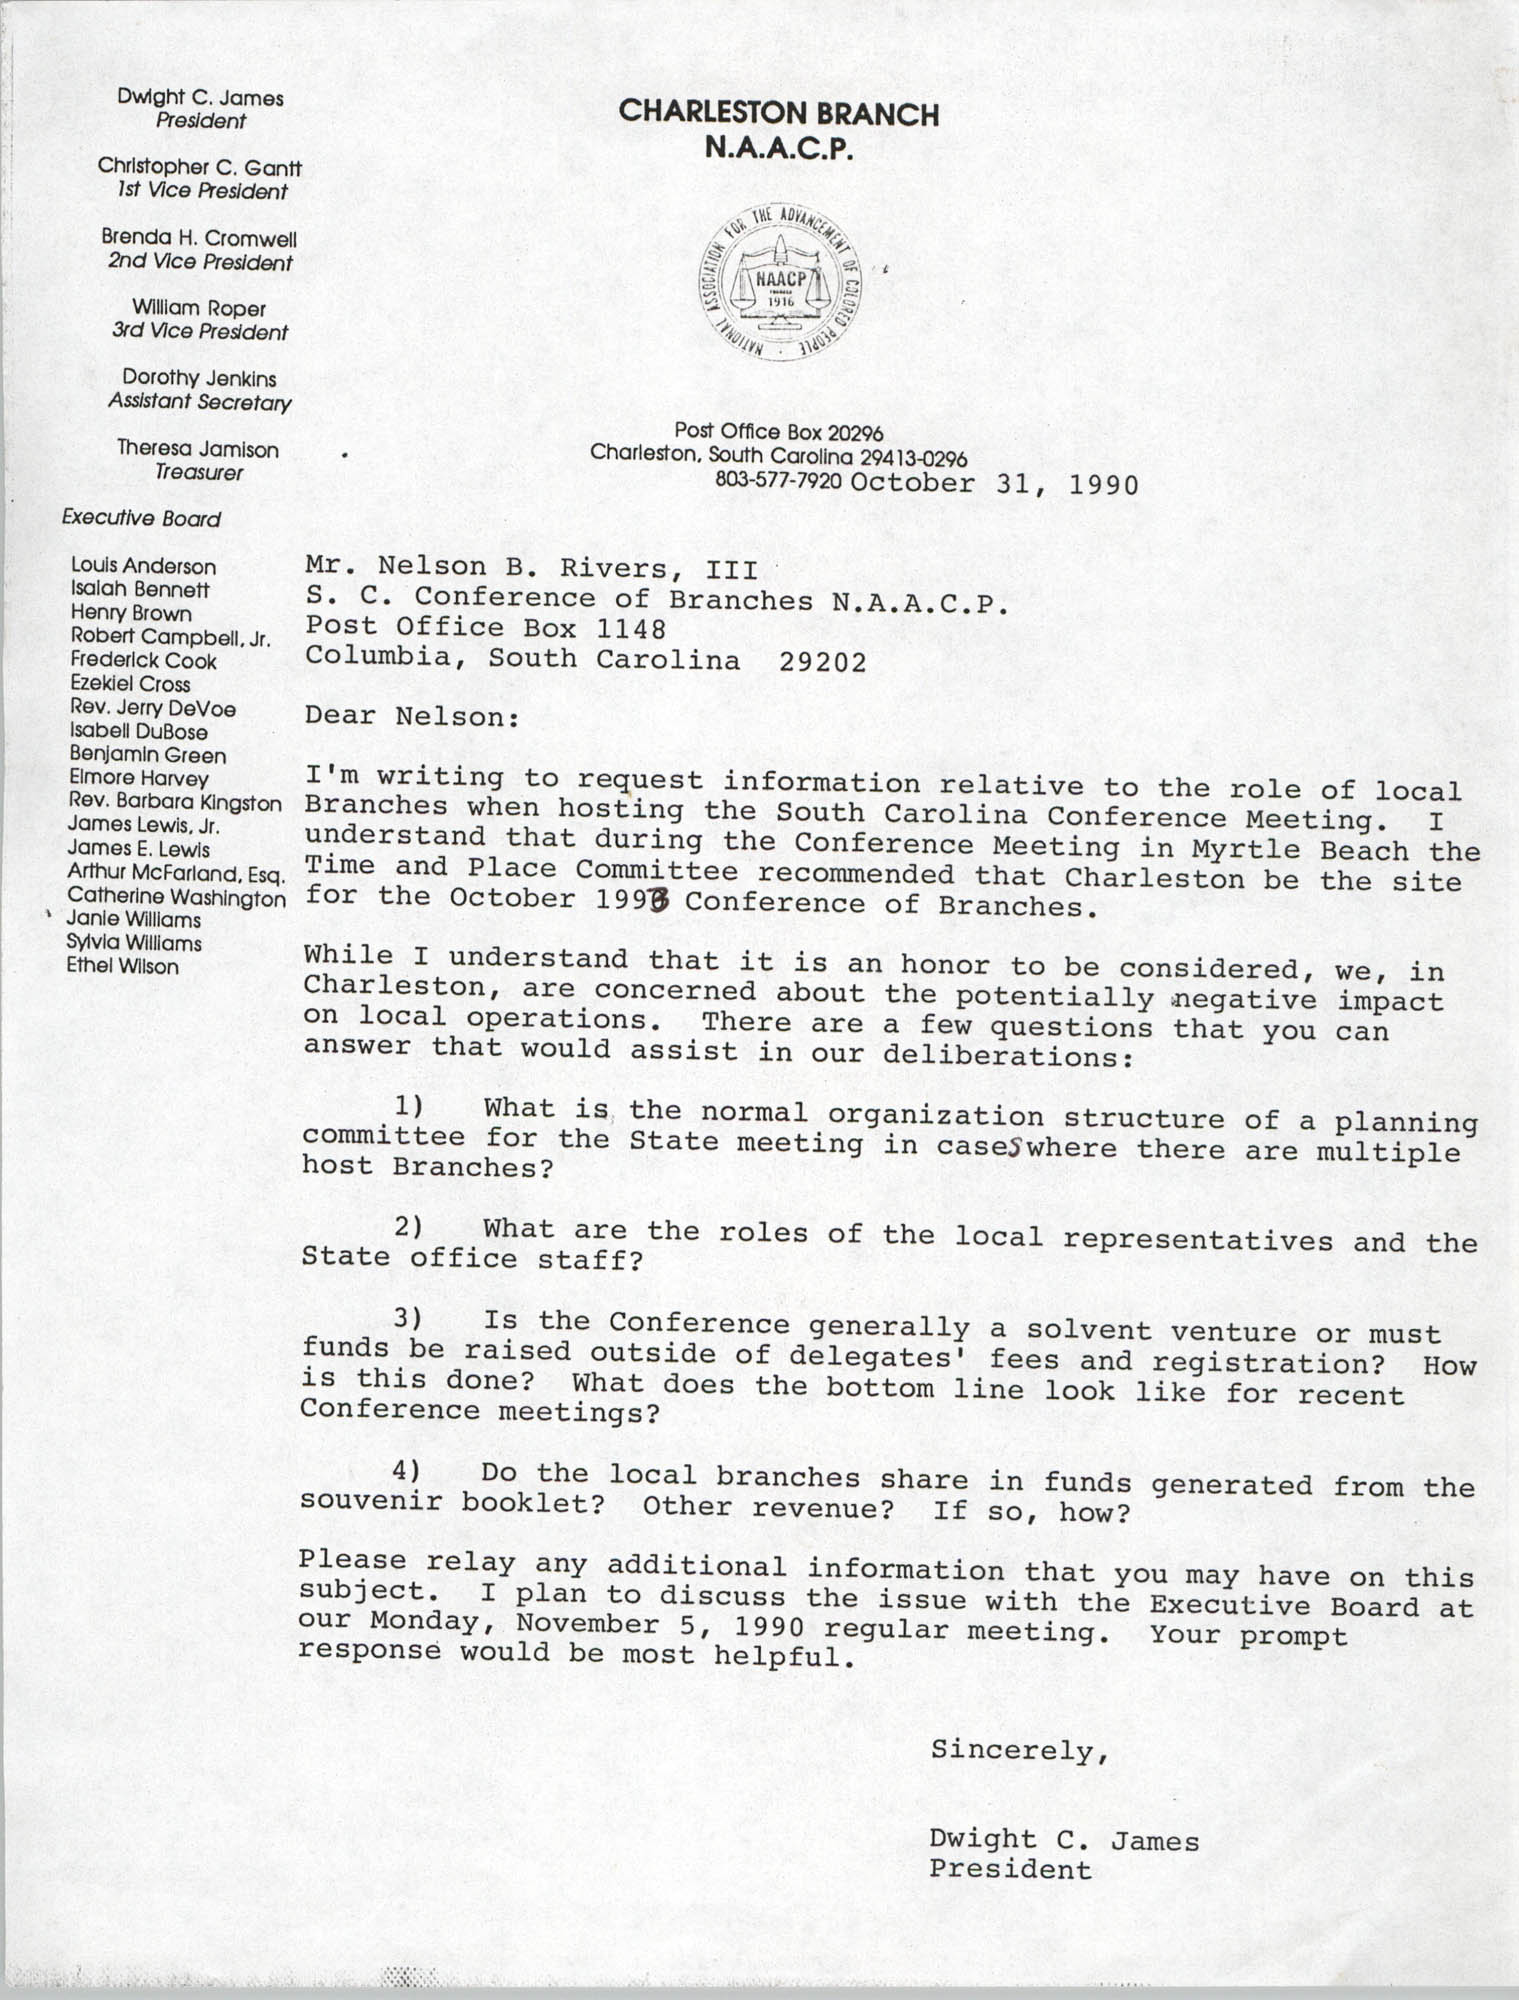 Letter from Dwight C. James to Nelson B. Rives, III, October 31, 1990